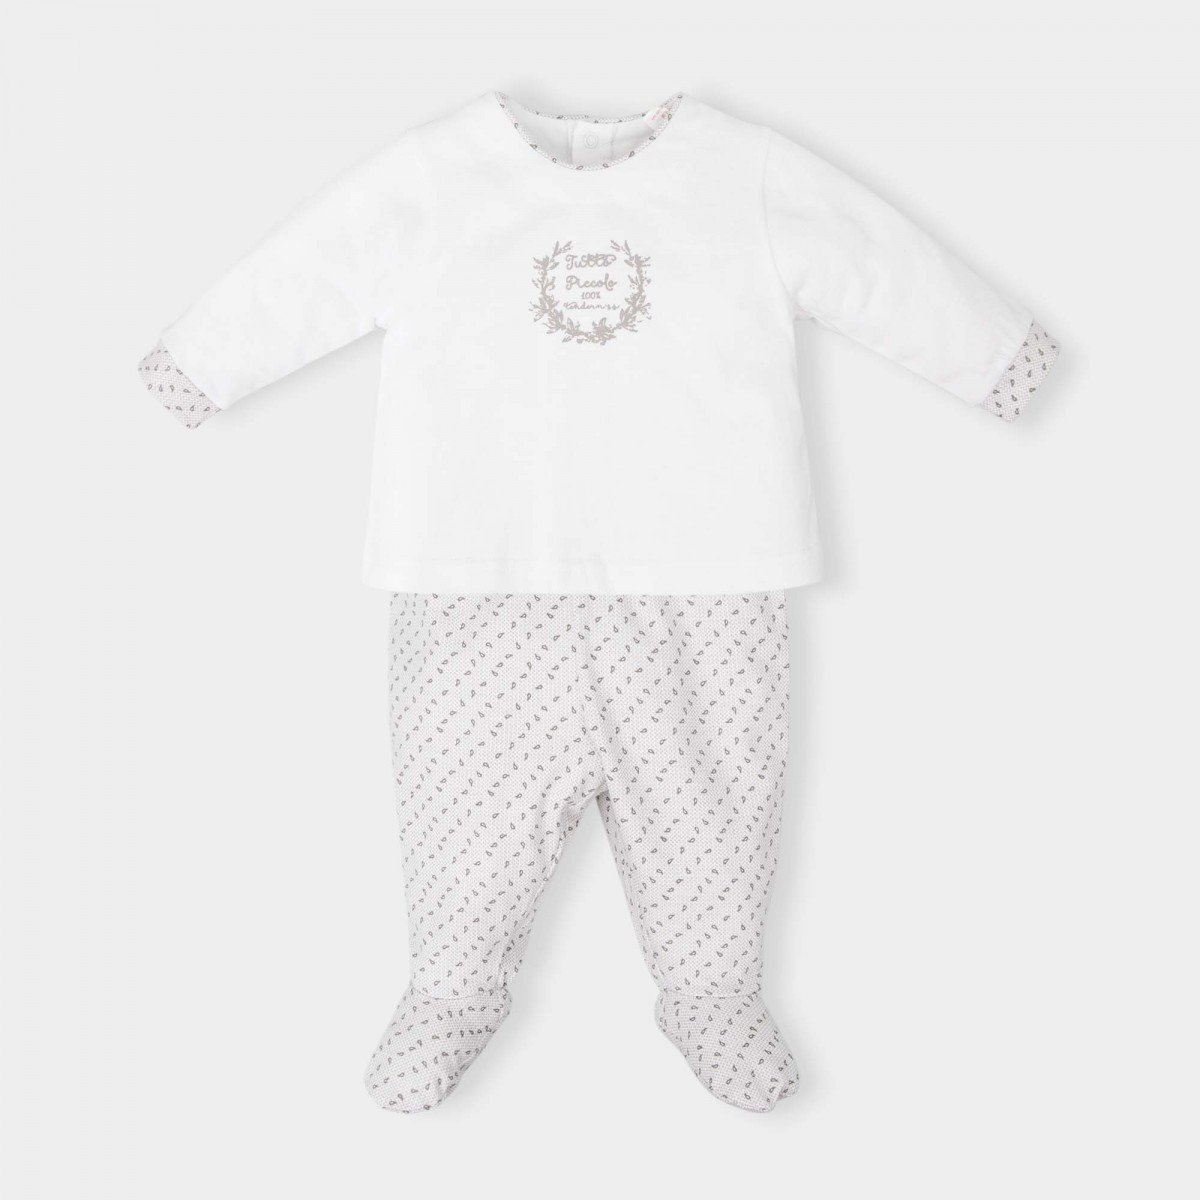 55fda93e5719 Baby Clothes Archives - Artisans Online Mall